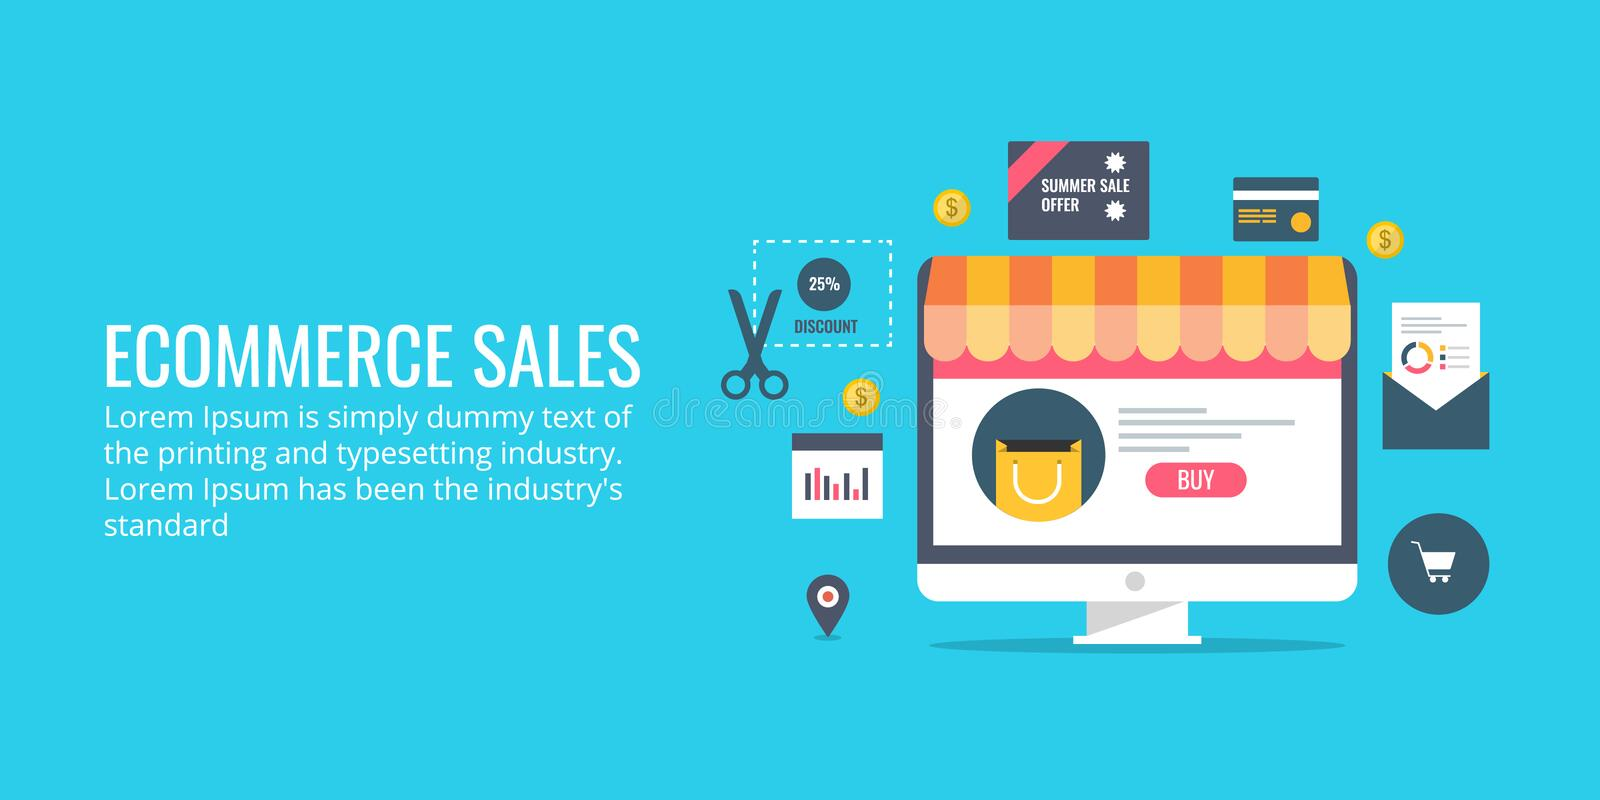 Ecommerce sales - online transaction - product selling. Flat design vector concept. royalty free illustration